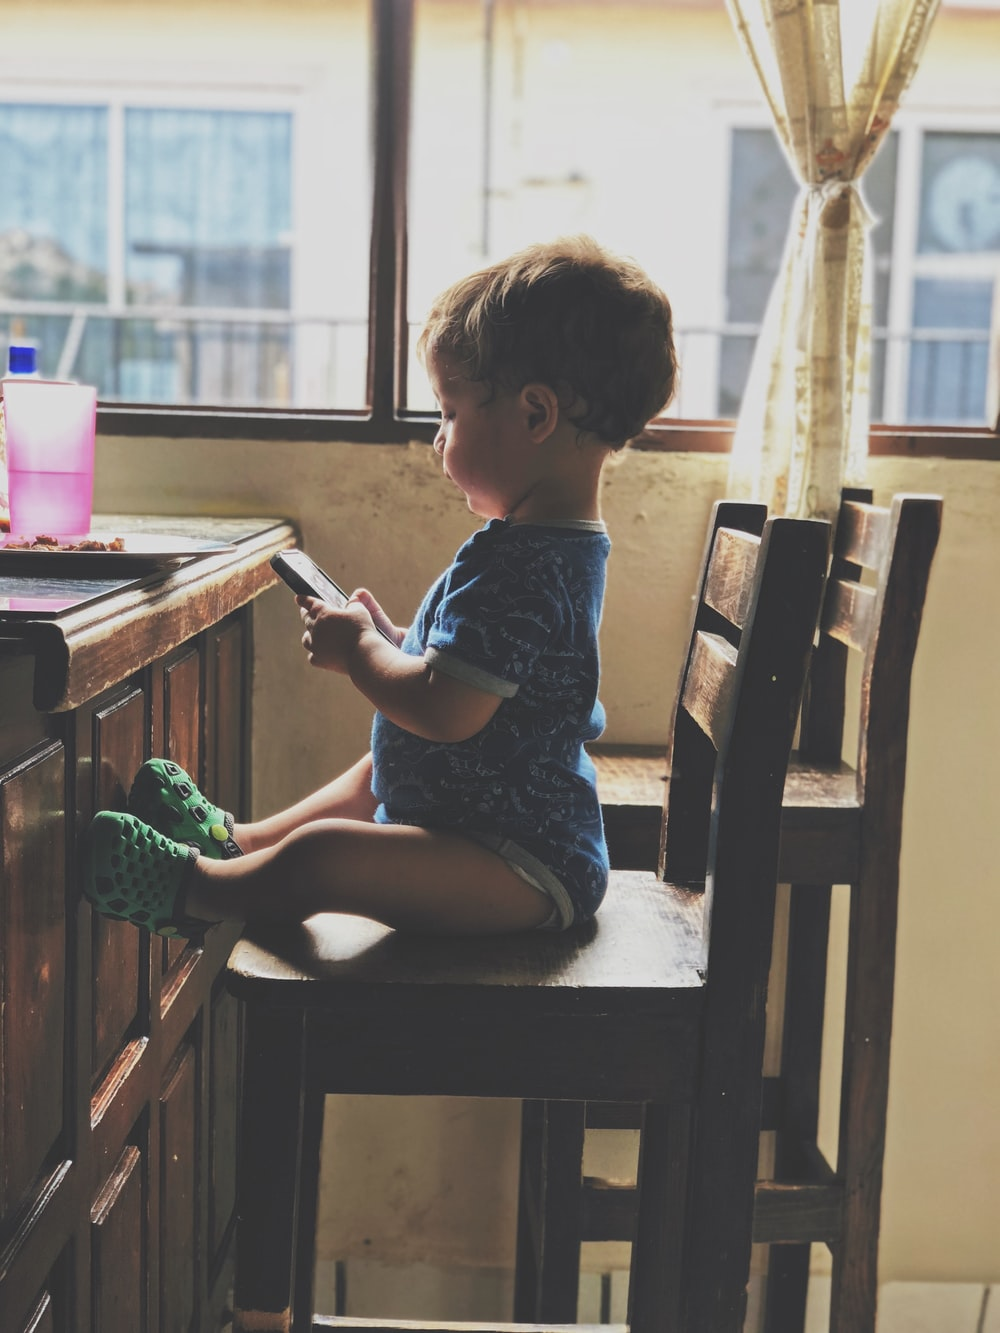 boy holding smartphone while sitting on the chair